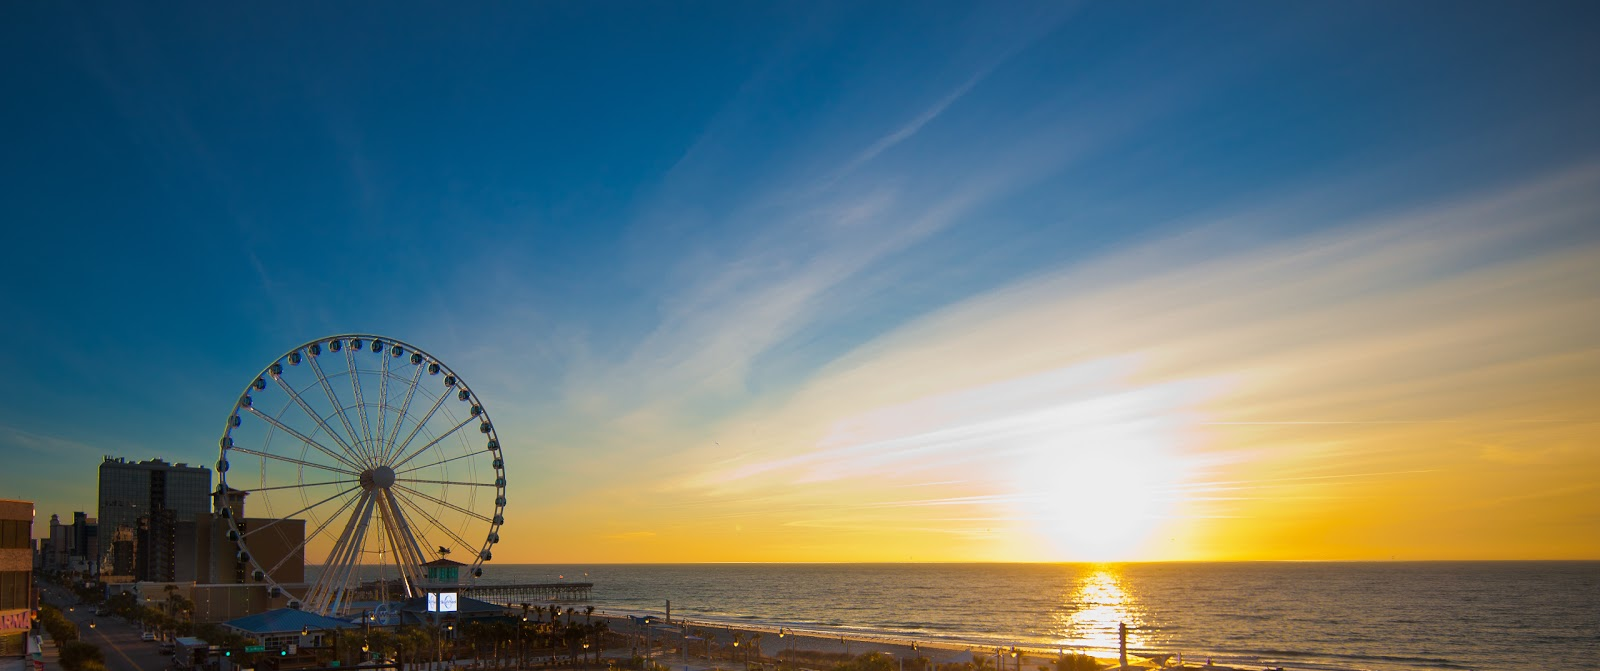 Myrtle Beach Celebrates 60 Best Kept Secrets Of The Grand Strand During Its Miles In Days Campaign